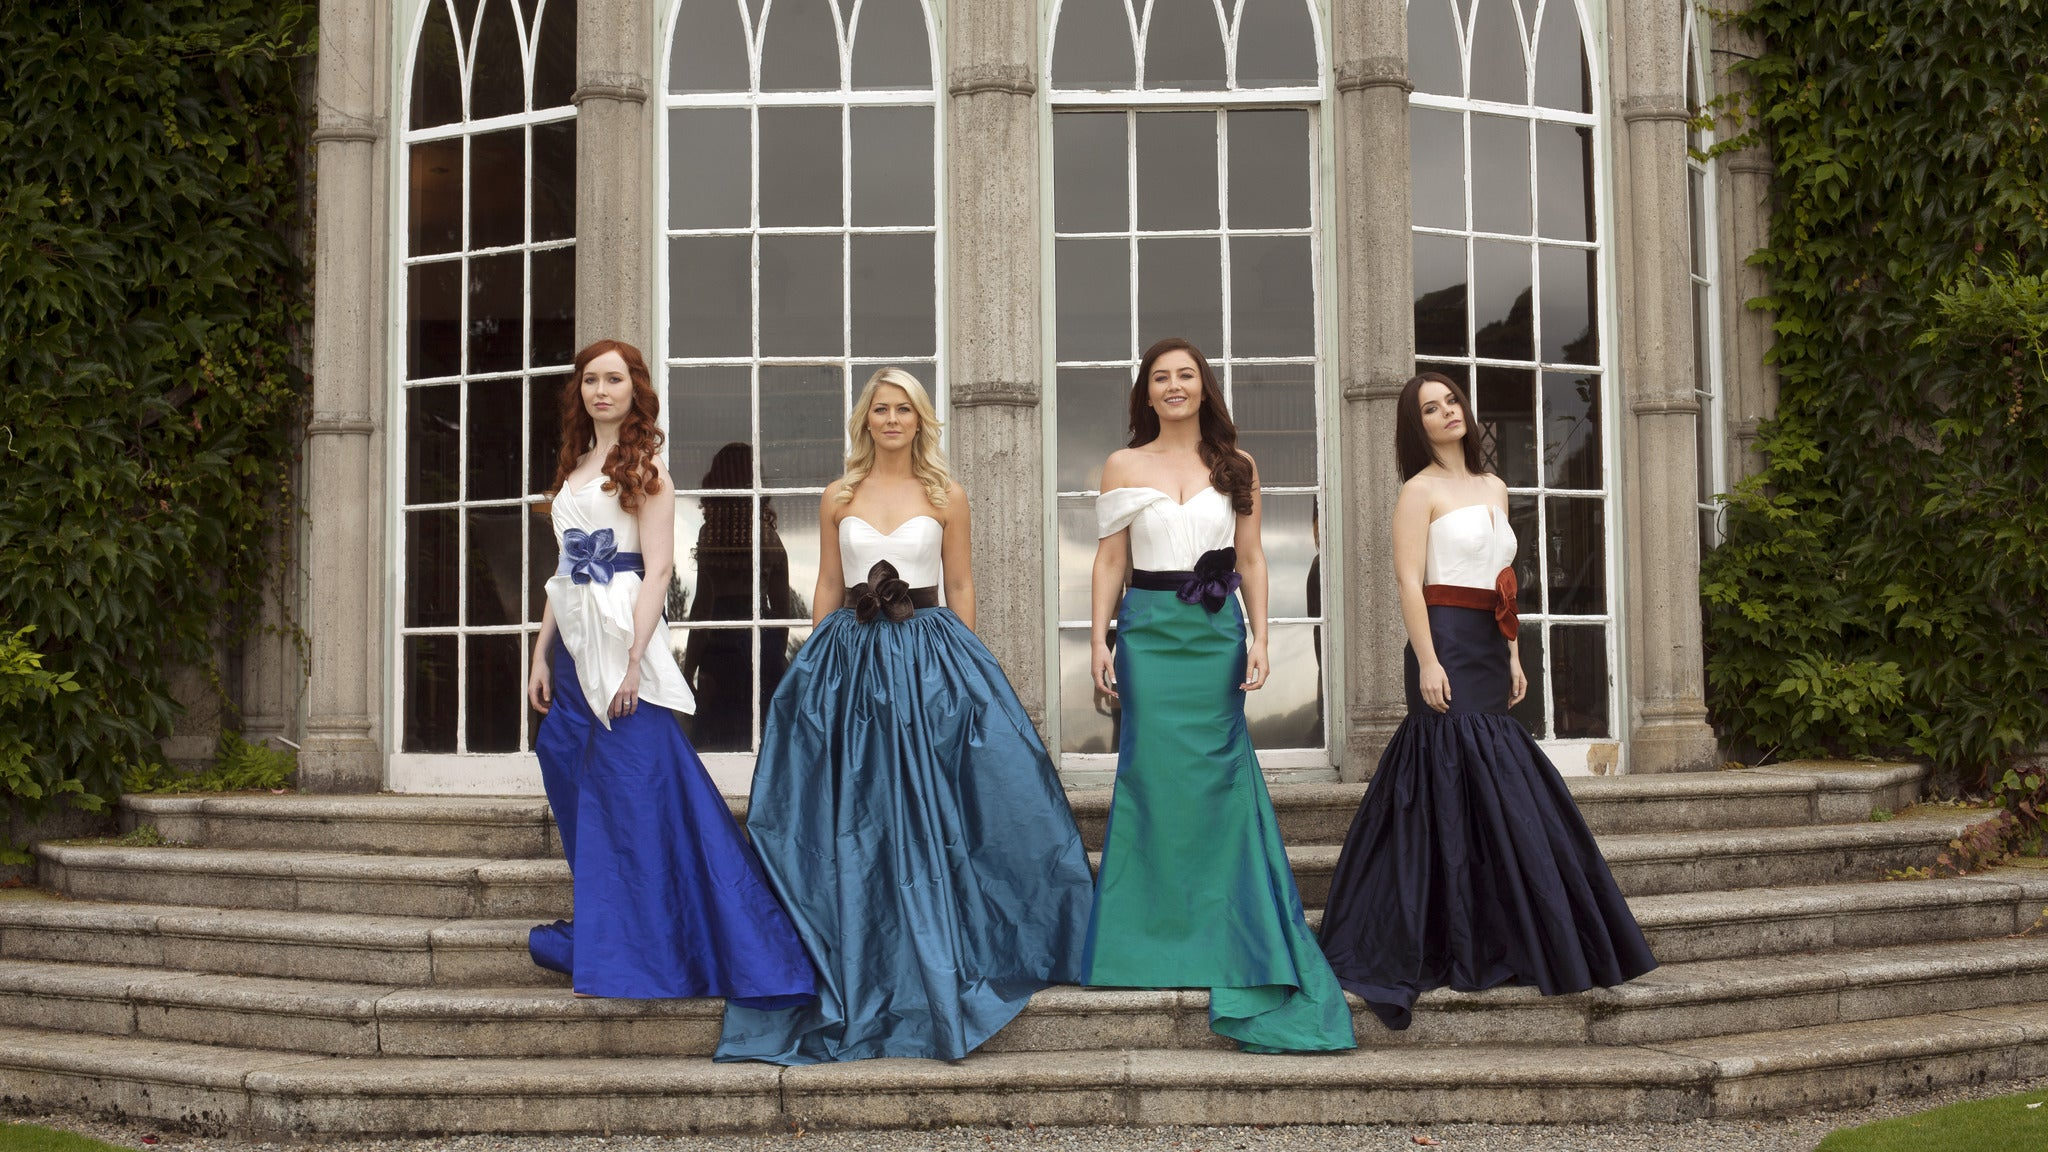 Celtic Woman: Homecoming Tour at Adler Theatre - Davenport, IA 52801